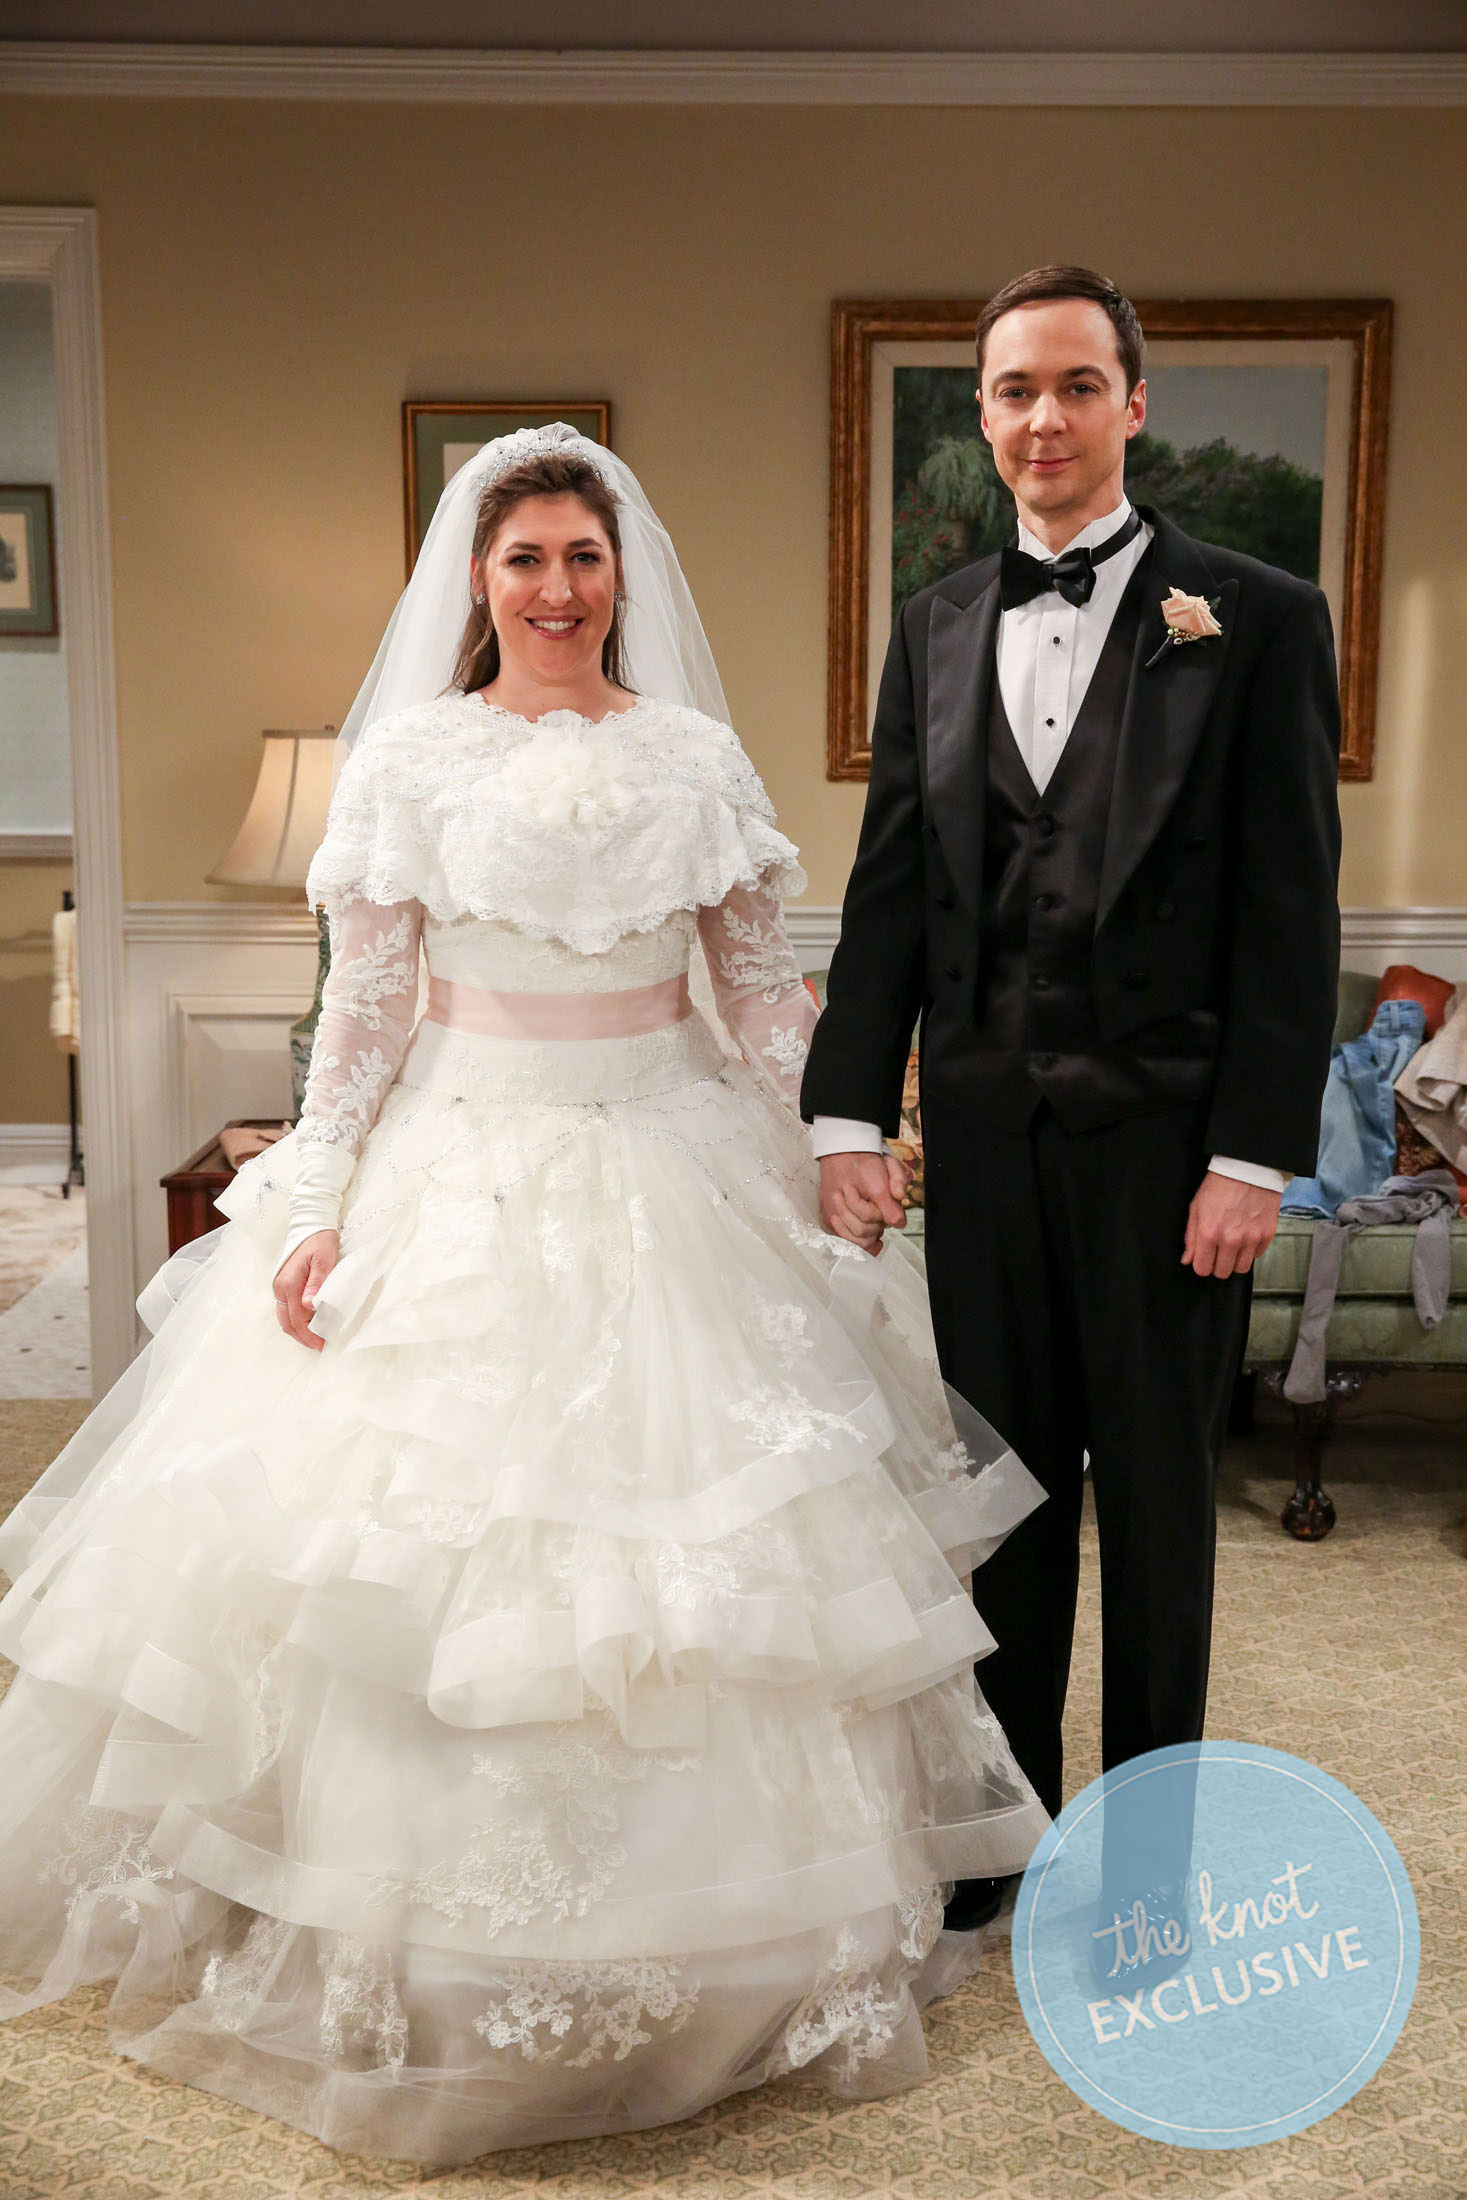 Sheldon And Amy Wedding.Exclusive Sheldon And Amy S Big Bang Theory Wedding Album